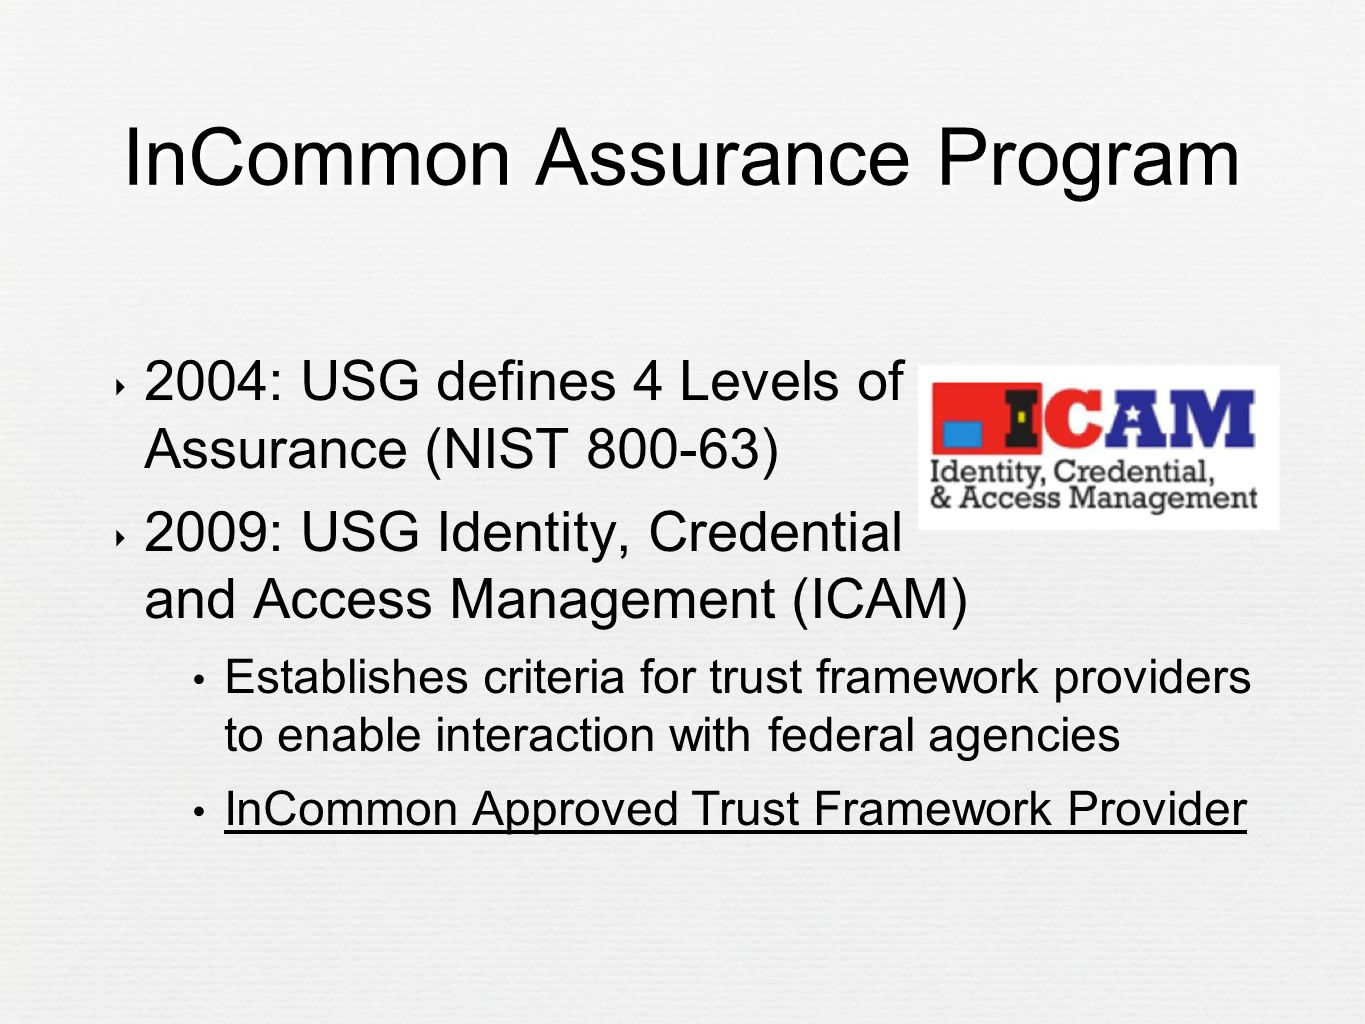 InCommon Assurance Program ‣ 2004: USG defines 4 Levels of Assurance (NIST 800-63) ‣ 2009: USG Identity, Credential and Access Management (ICAM) Establishes criteria for trust framework providers to enable interaction with federal agencies InCommon Approved Trust Framework Provider